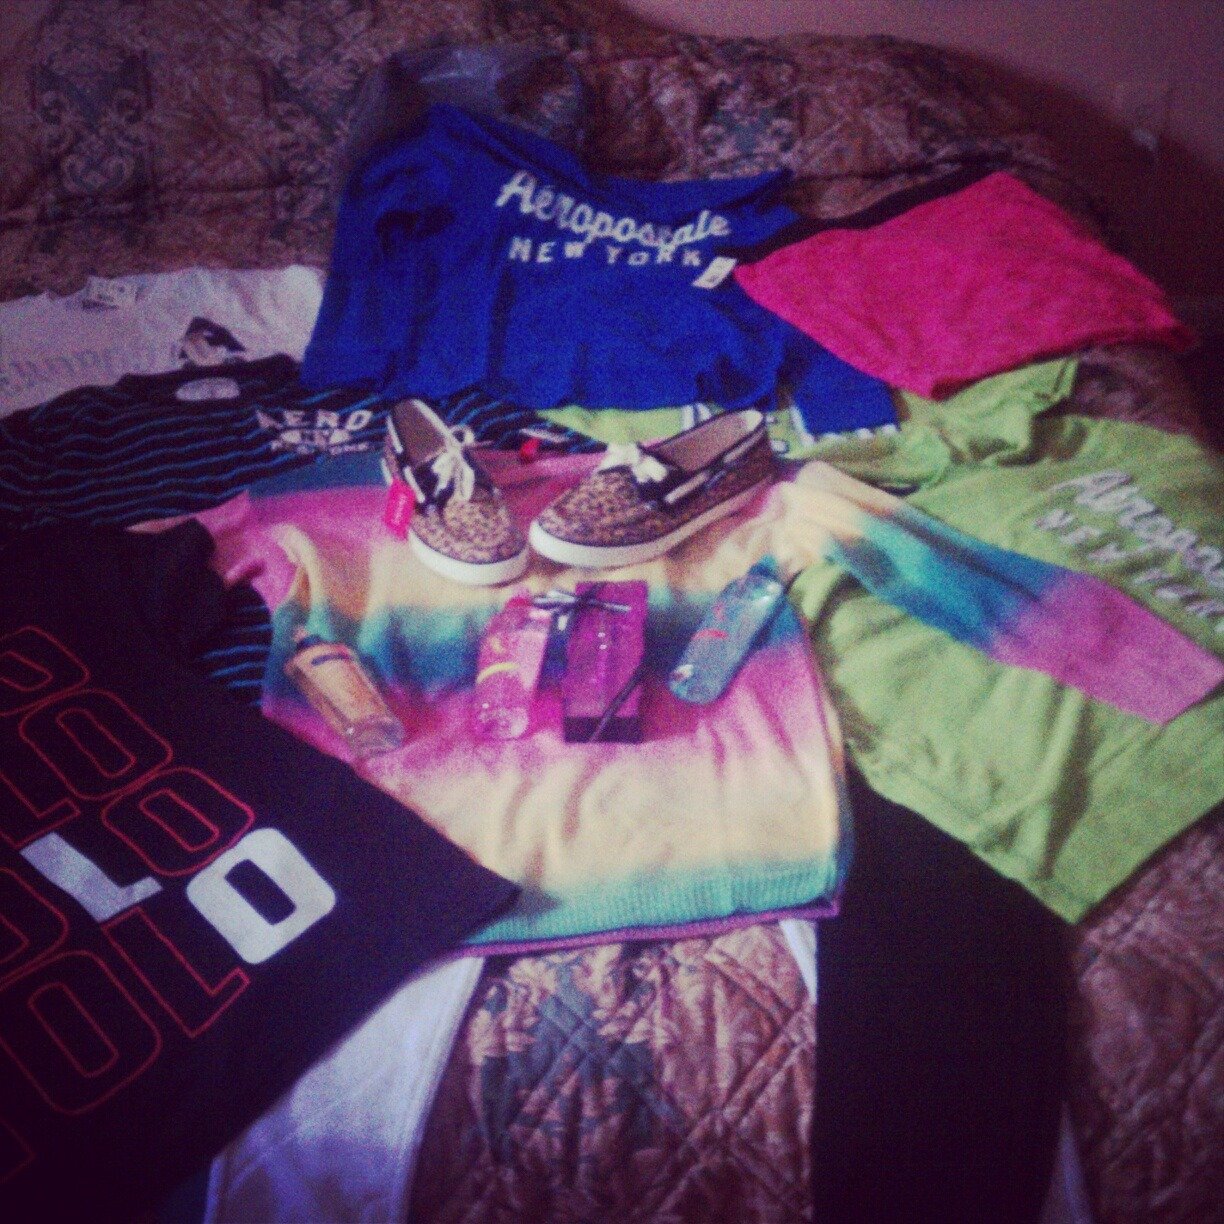 Went shopping the other day :)